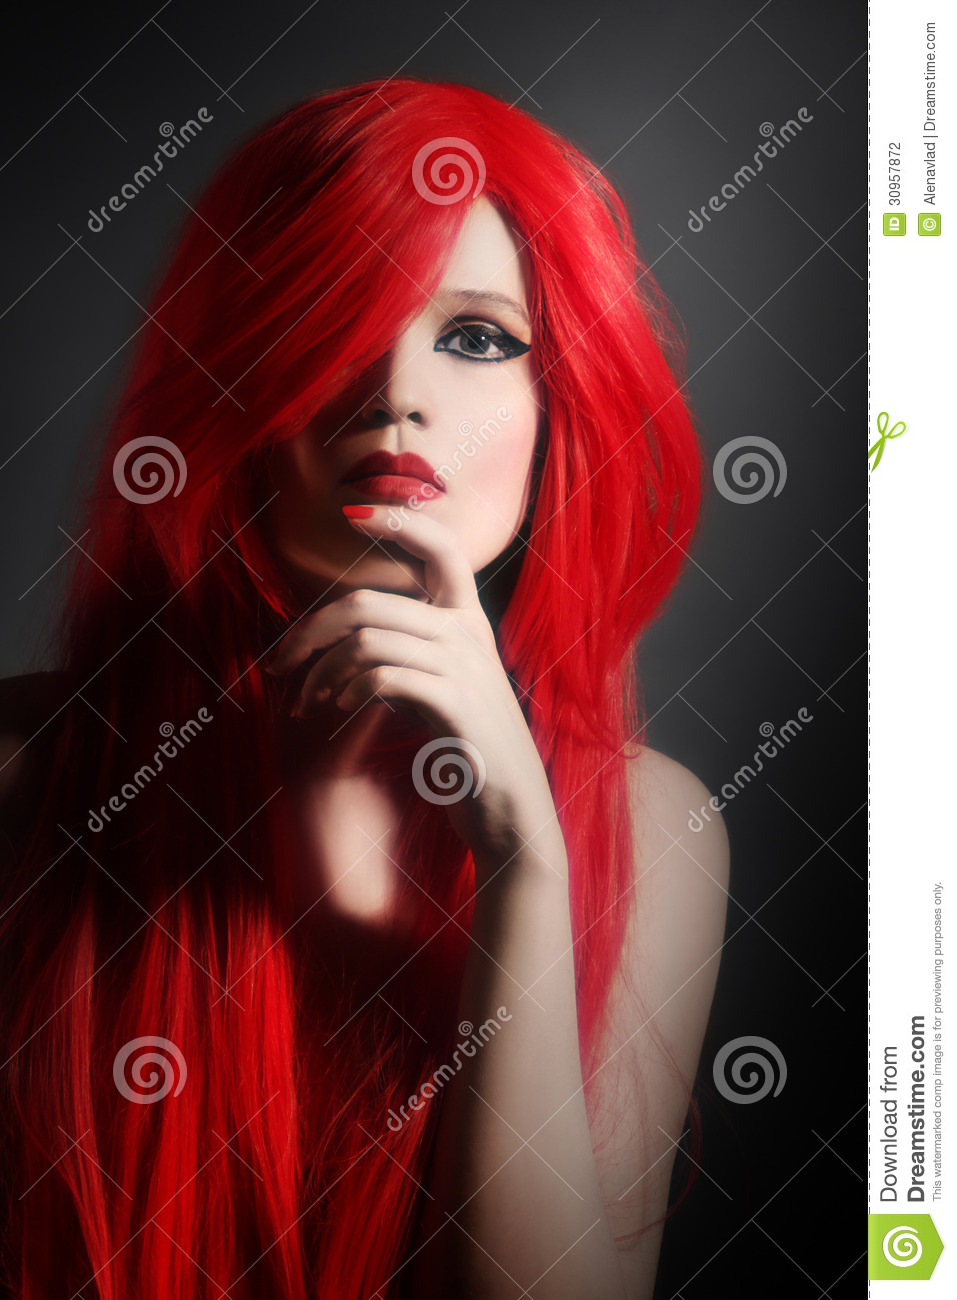 Red Hair Woman Hairstyle Portrait Stock Photography Image 30957872